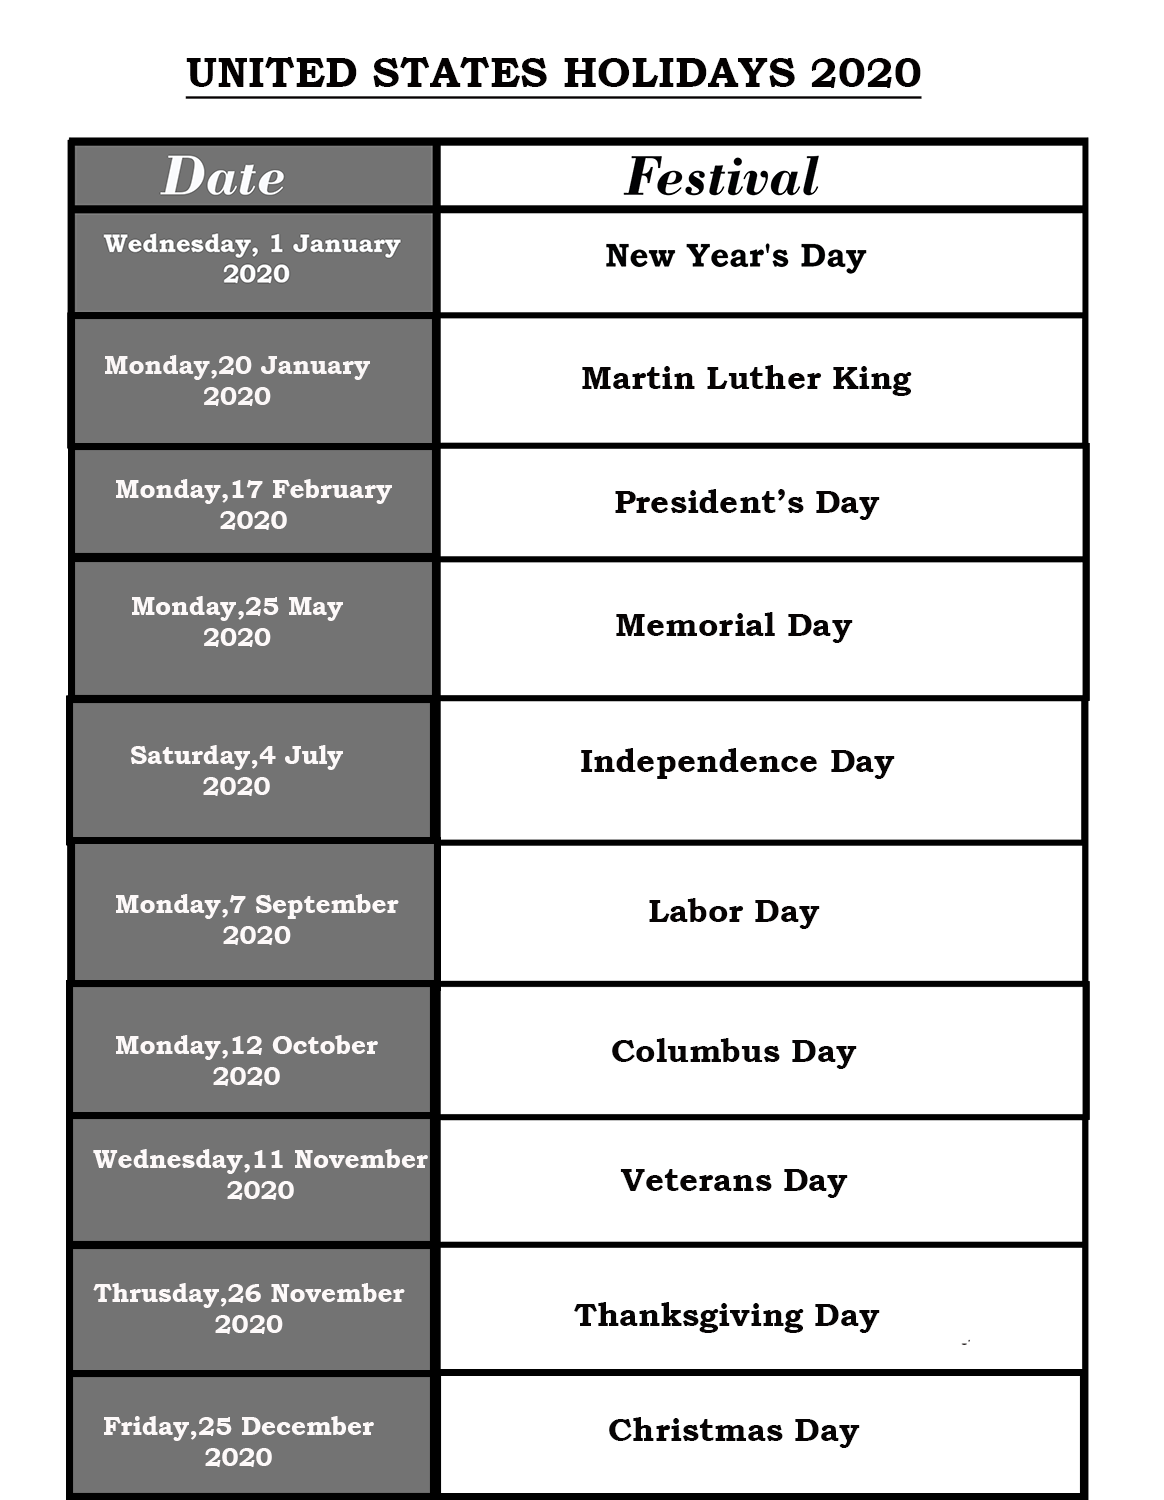 Public Holidays in USA 2020